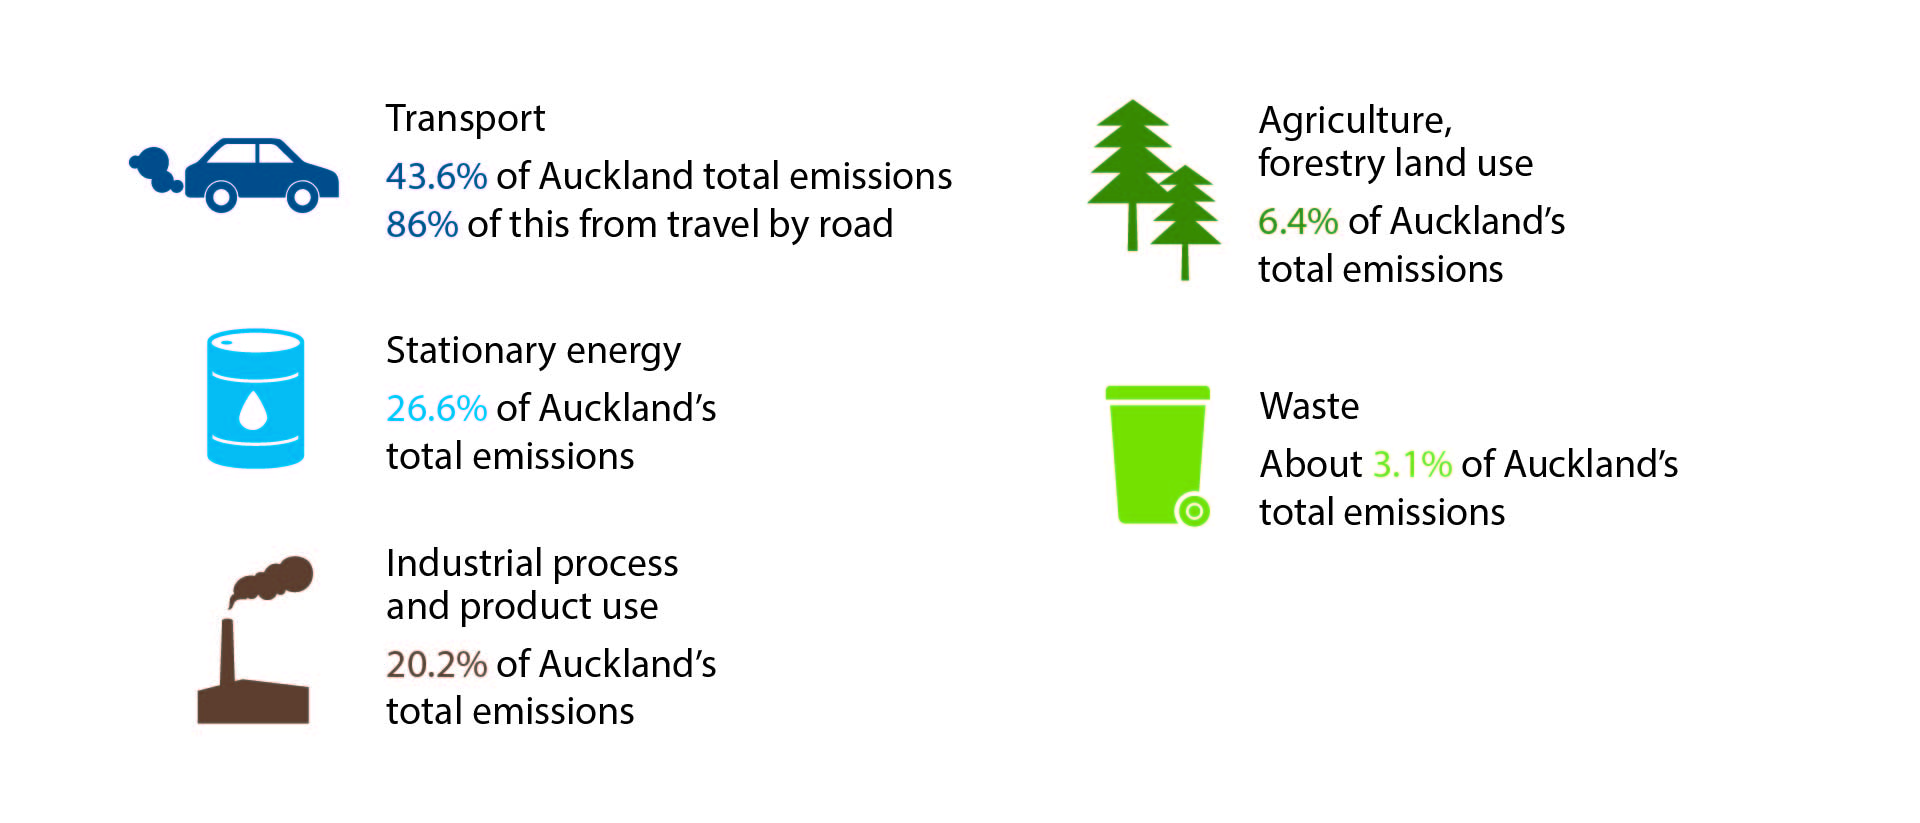 Breakdown of Auckland key emission sources: transport, stationary energy, industrial process, agriculture and forestry, waste.